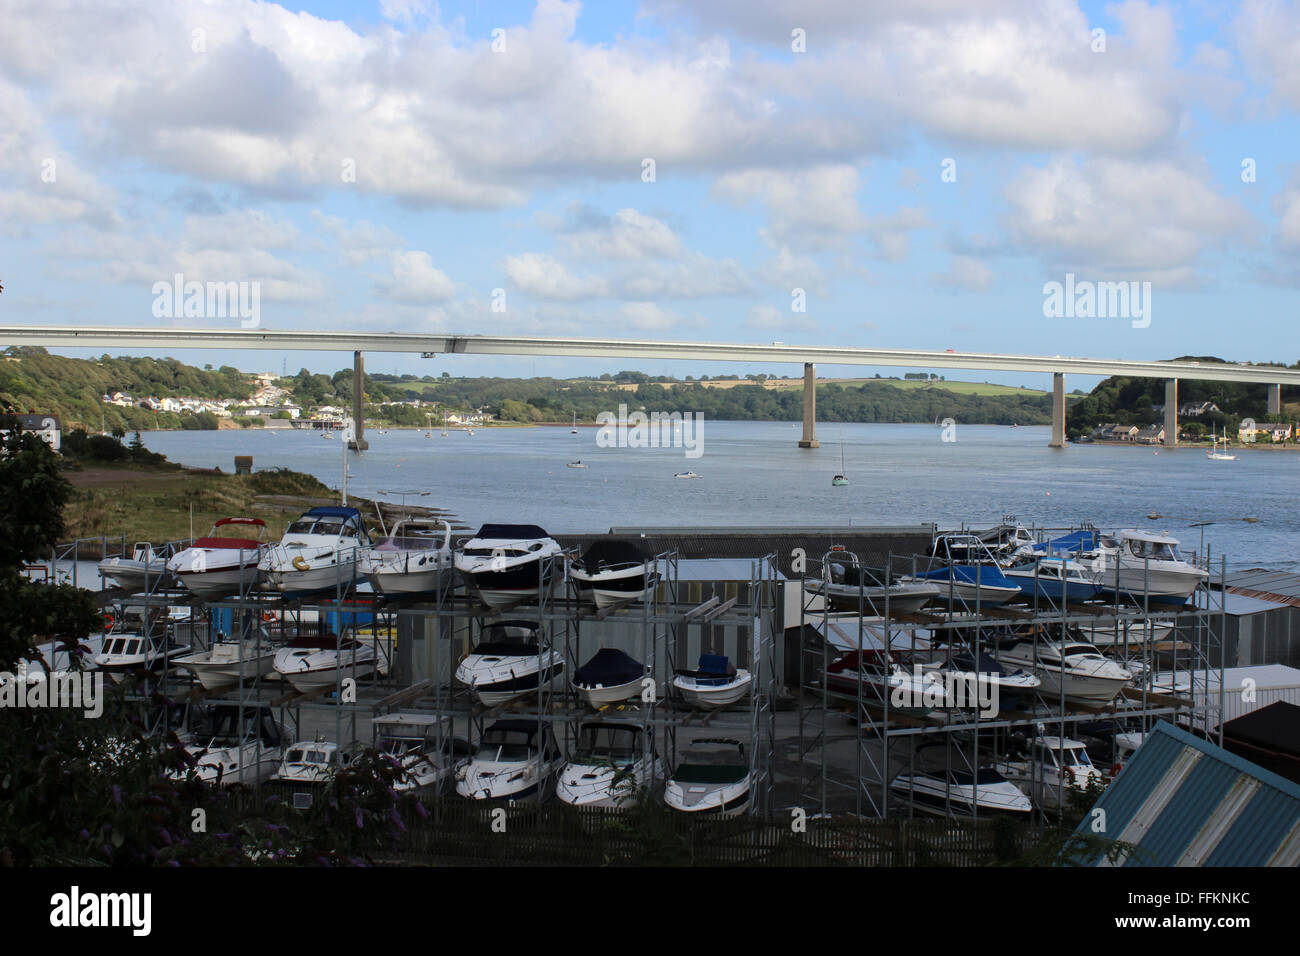 Yachts in Neyland yachting club Dyfed Wales Stock Photo